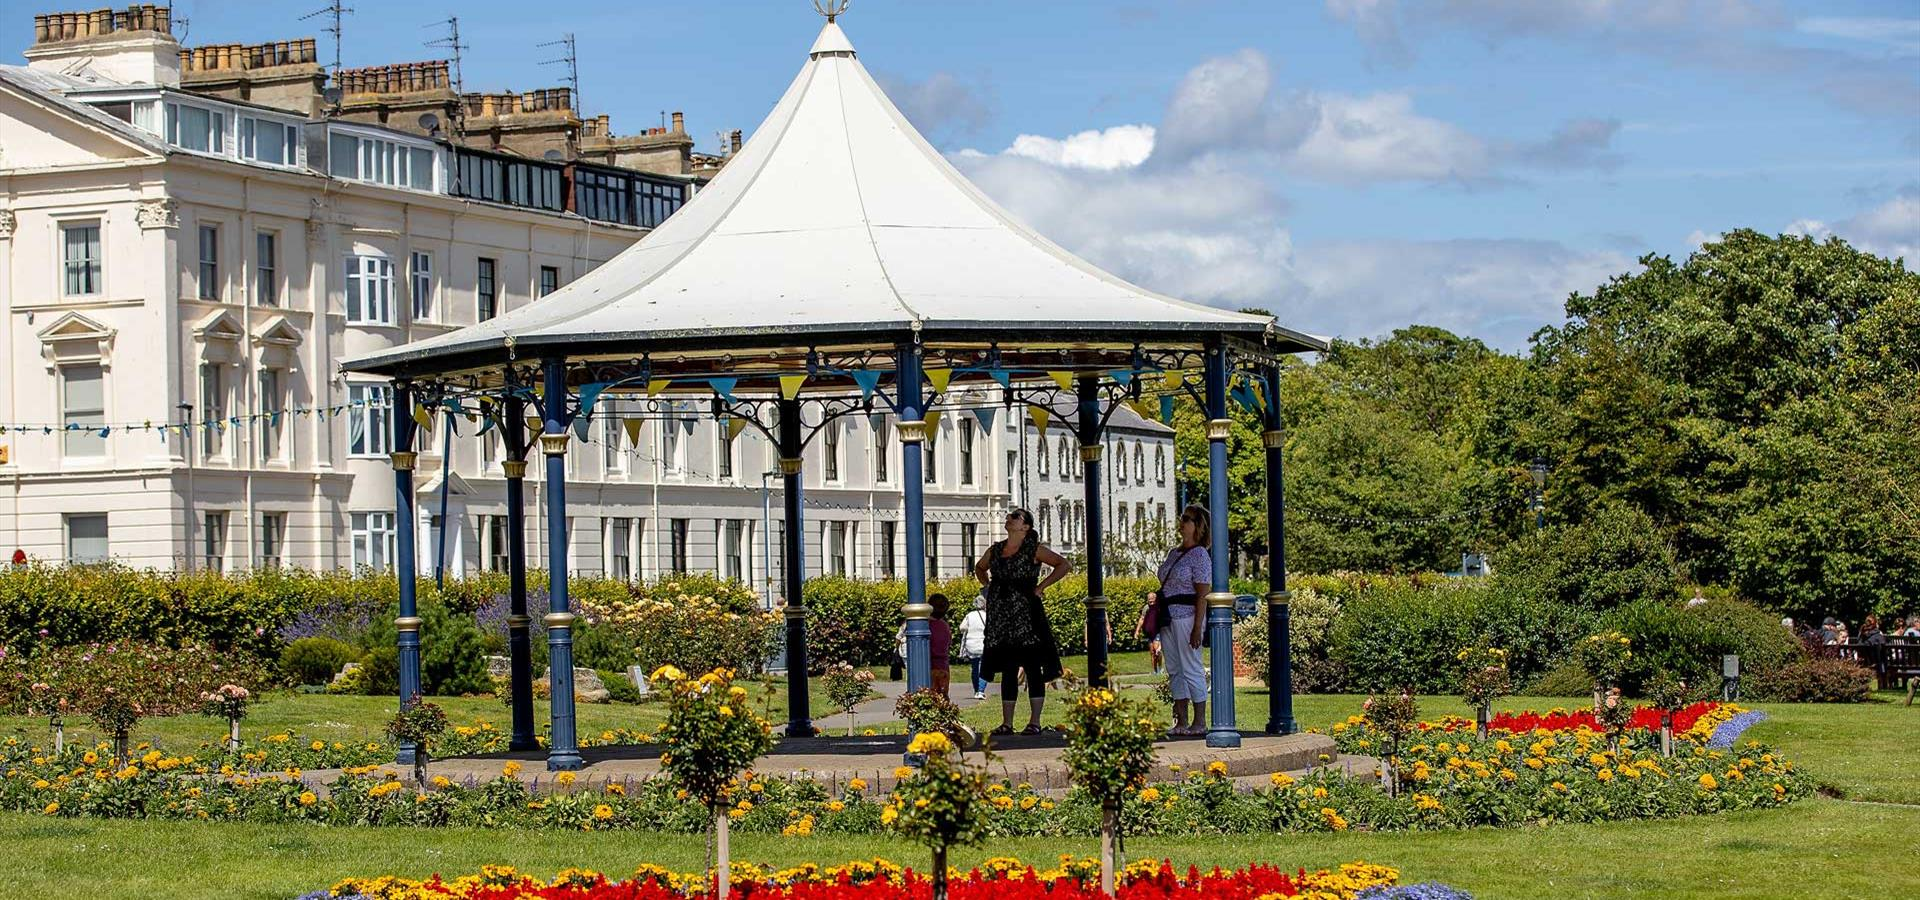 An image of the Filey Bandstand - By Charlotte Graham